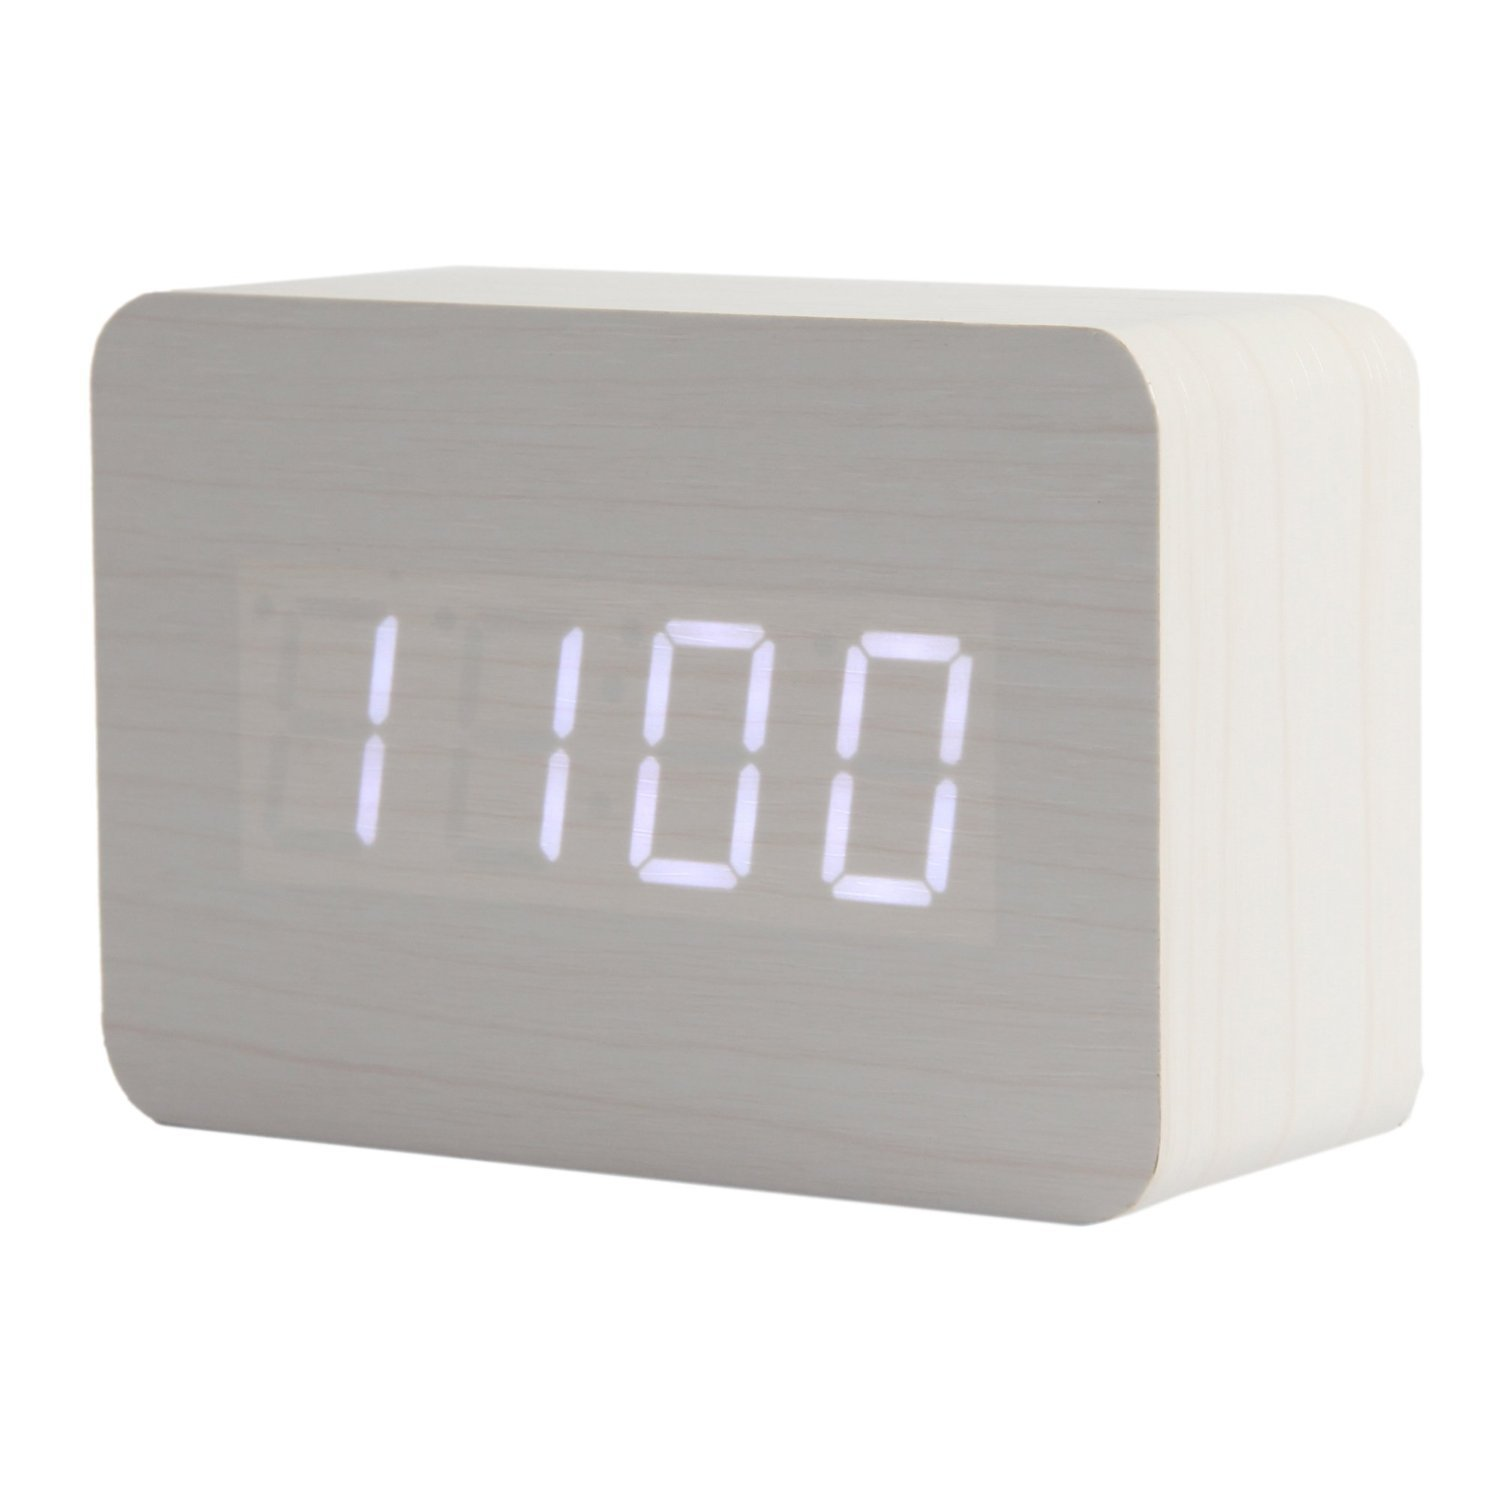 Small Led Clocks When Were Digital Clocks Invented Digital Photos And